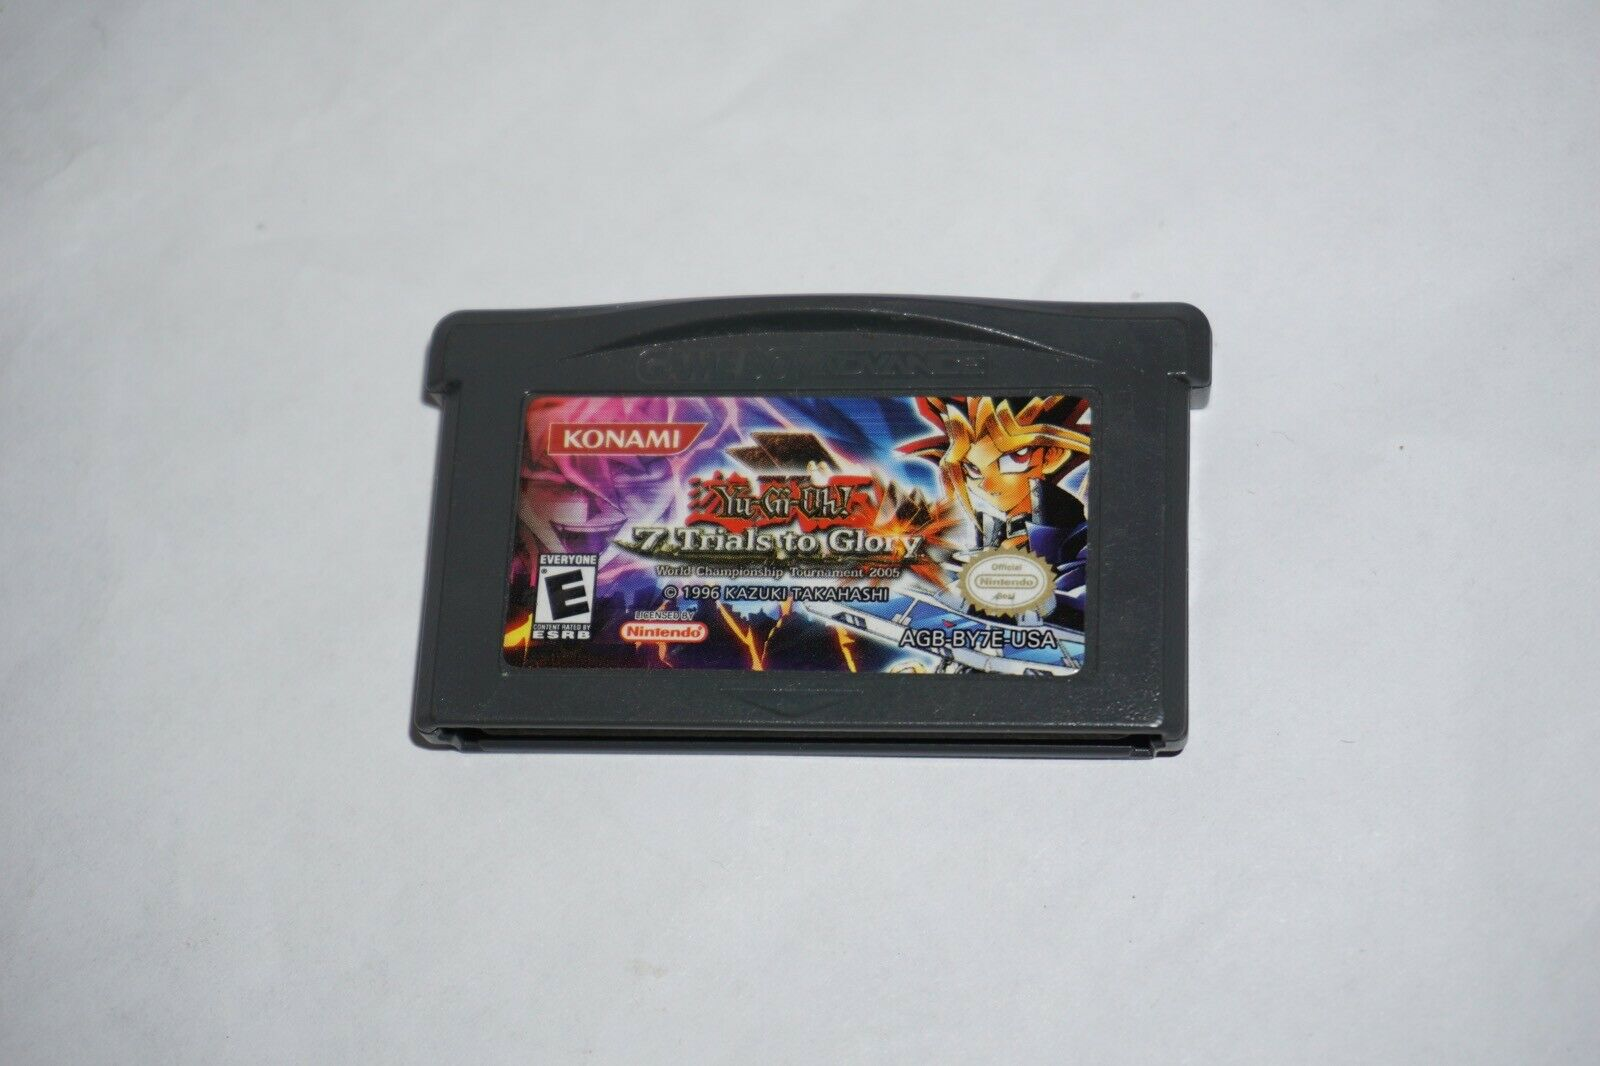 Yu Gi Oh 7 Trials To Glory World Championship Tournament 2005 Nintendo Game Boy Advance 2005 For Sale Online Ebay